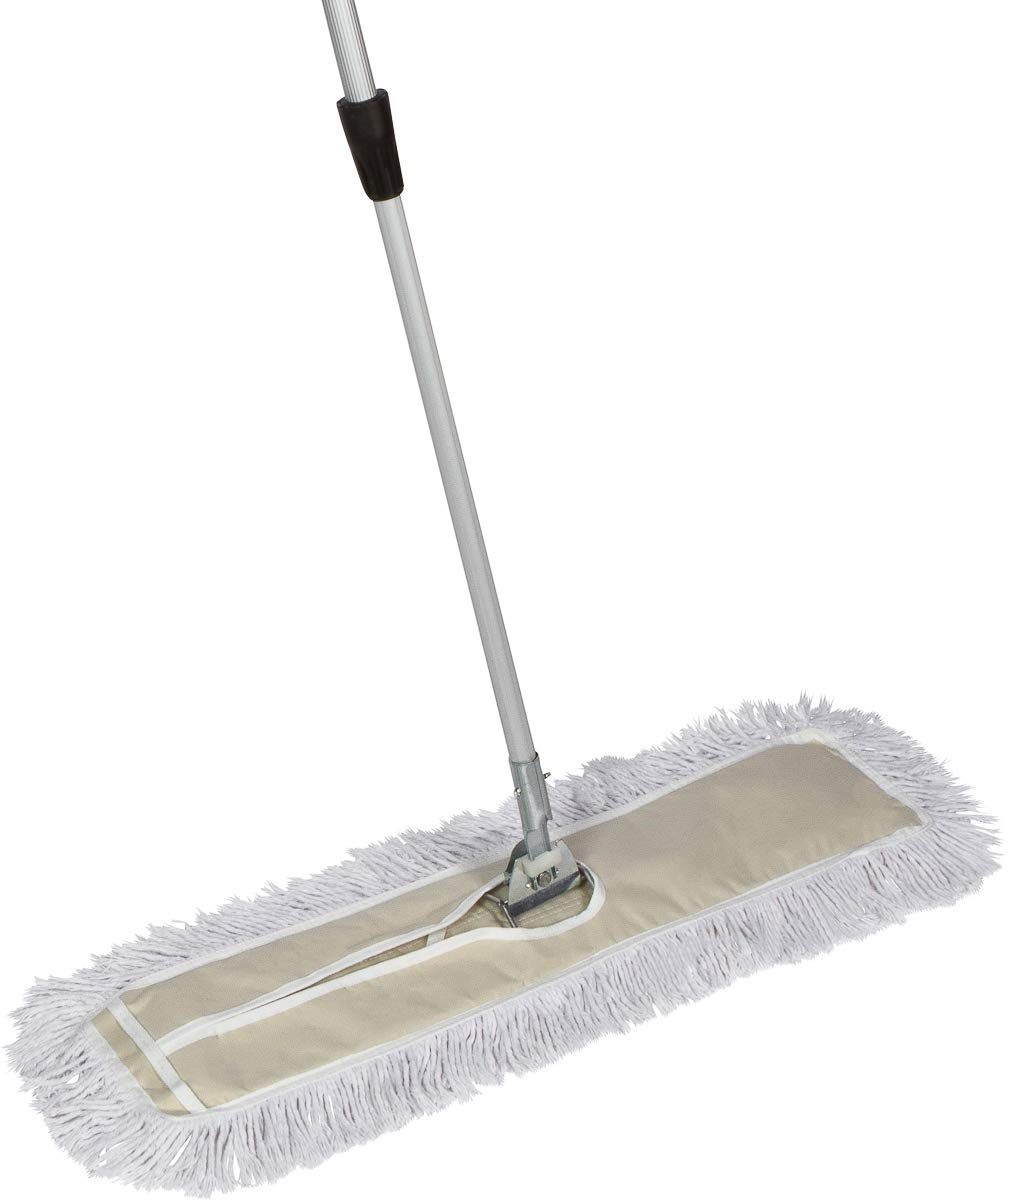 Tidy Tools 30 Inch Industrial Strength Cotton Dust Mop with Extendable Metal Telescopic Handle and Frame. 30'' X 5'' Wide Mop Head with Cut Ends by Tidy Tools